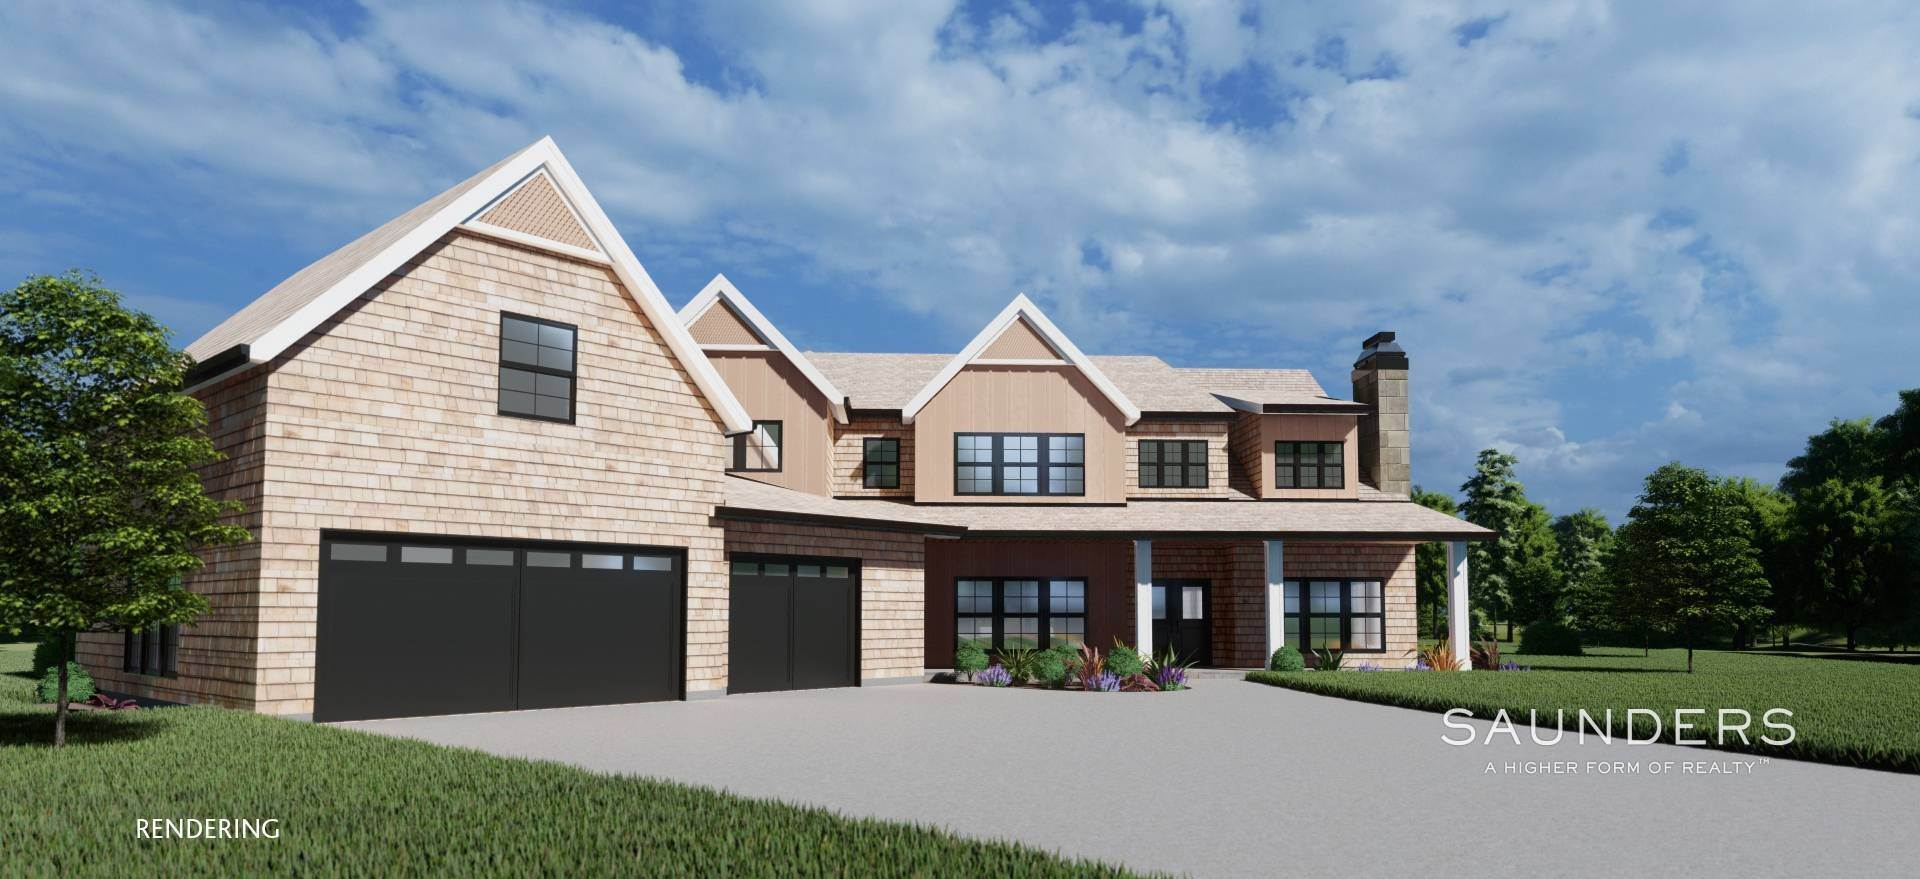 7. Single Family Homes for Sale at Sagaponack New Construction With Pool And Tennis 21 Forest Crossing, Sagaponack, Southampton Town, NY 11962